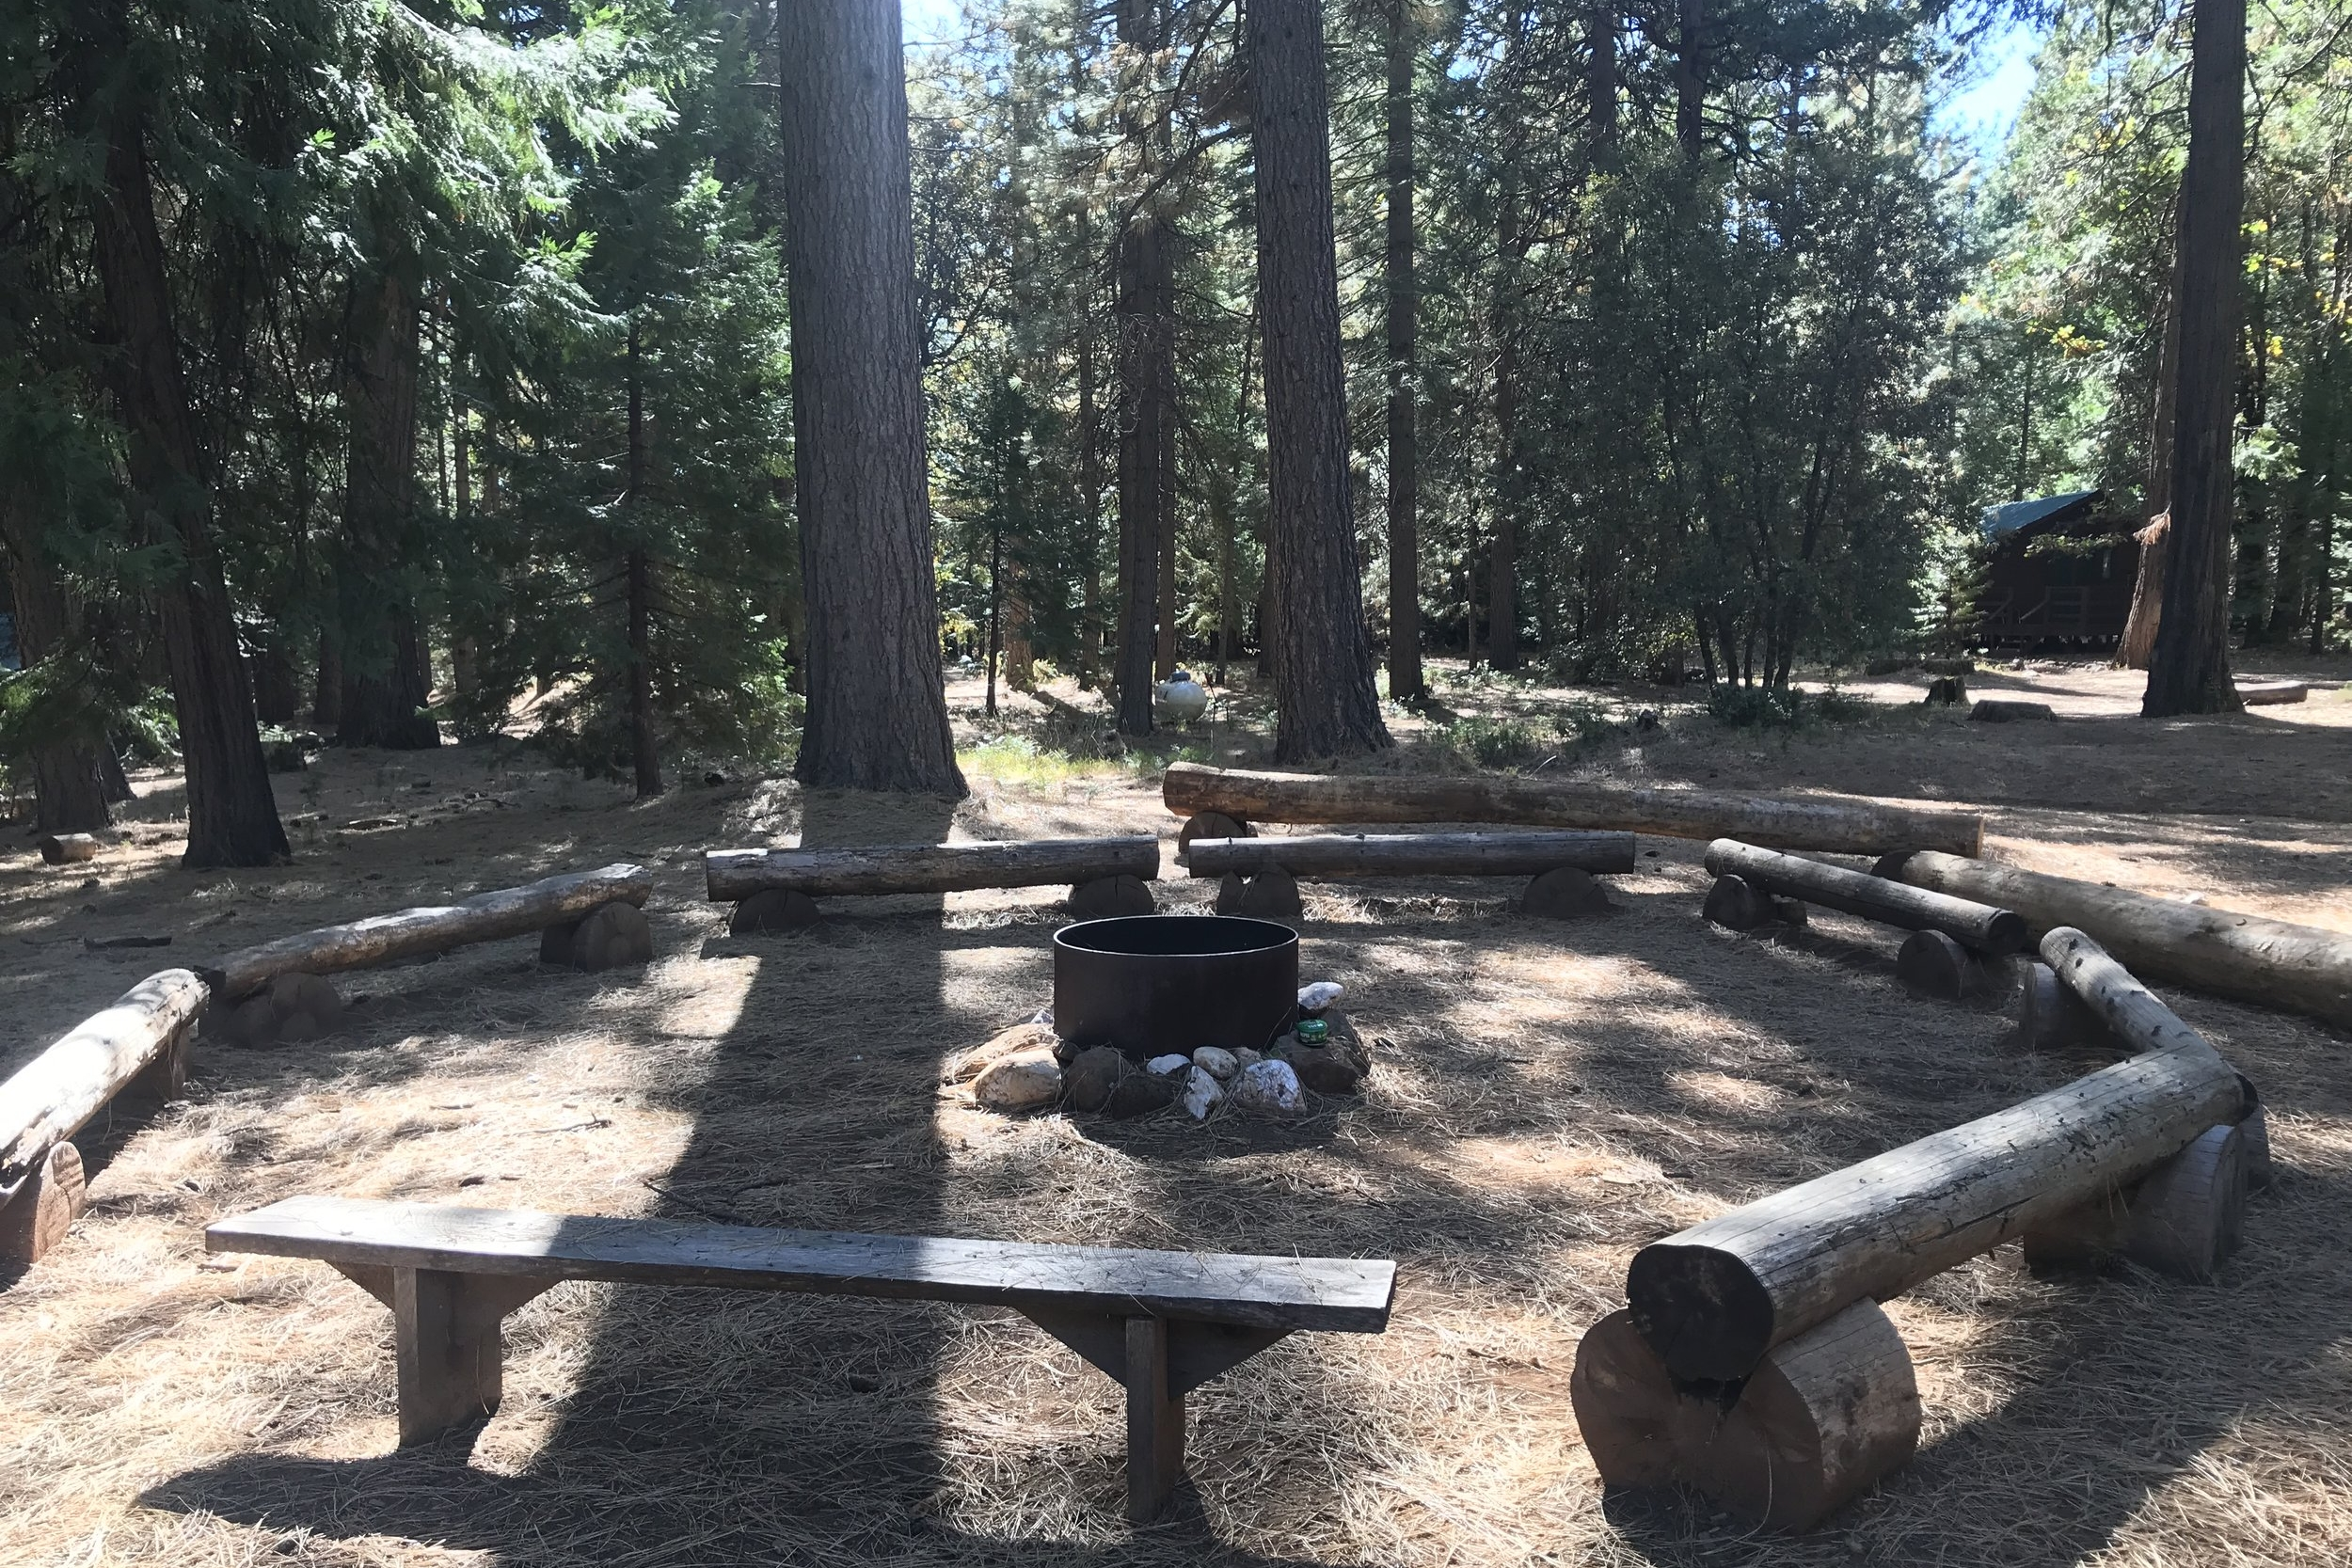 Community of the Great Commission_Bobbitt Area Campfire Circle_California Group Camp Rental.JPG